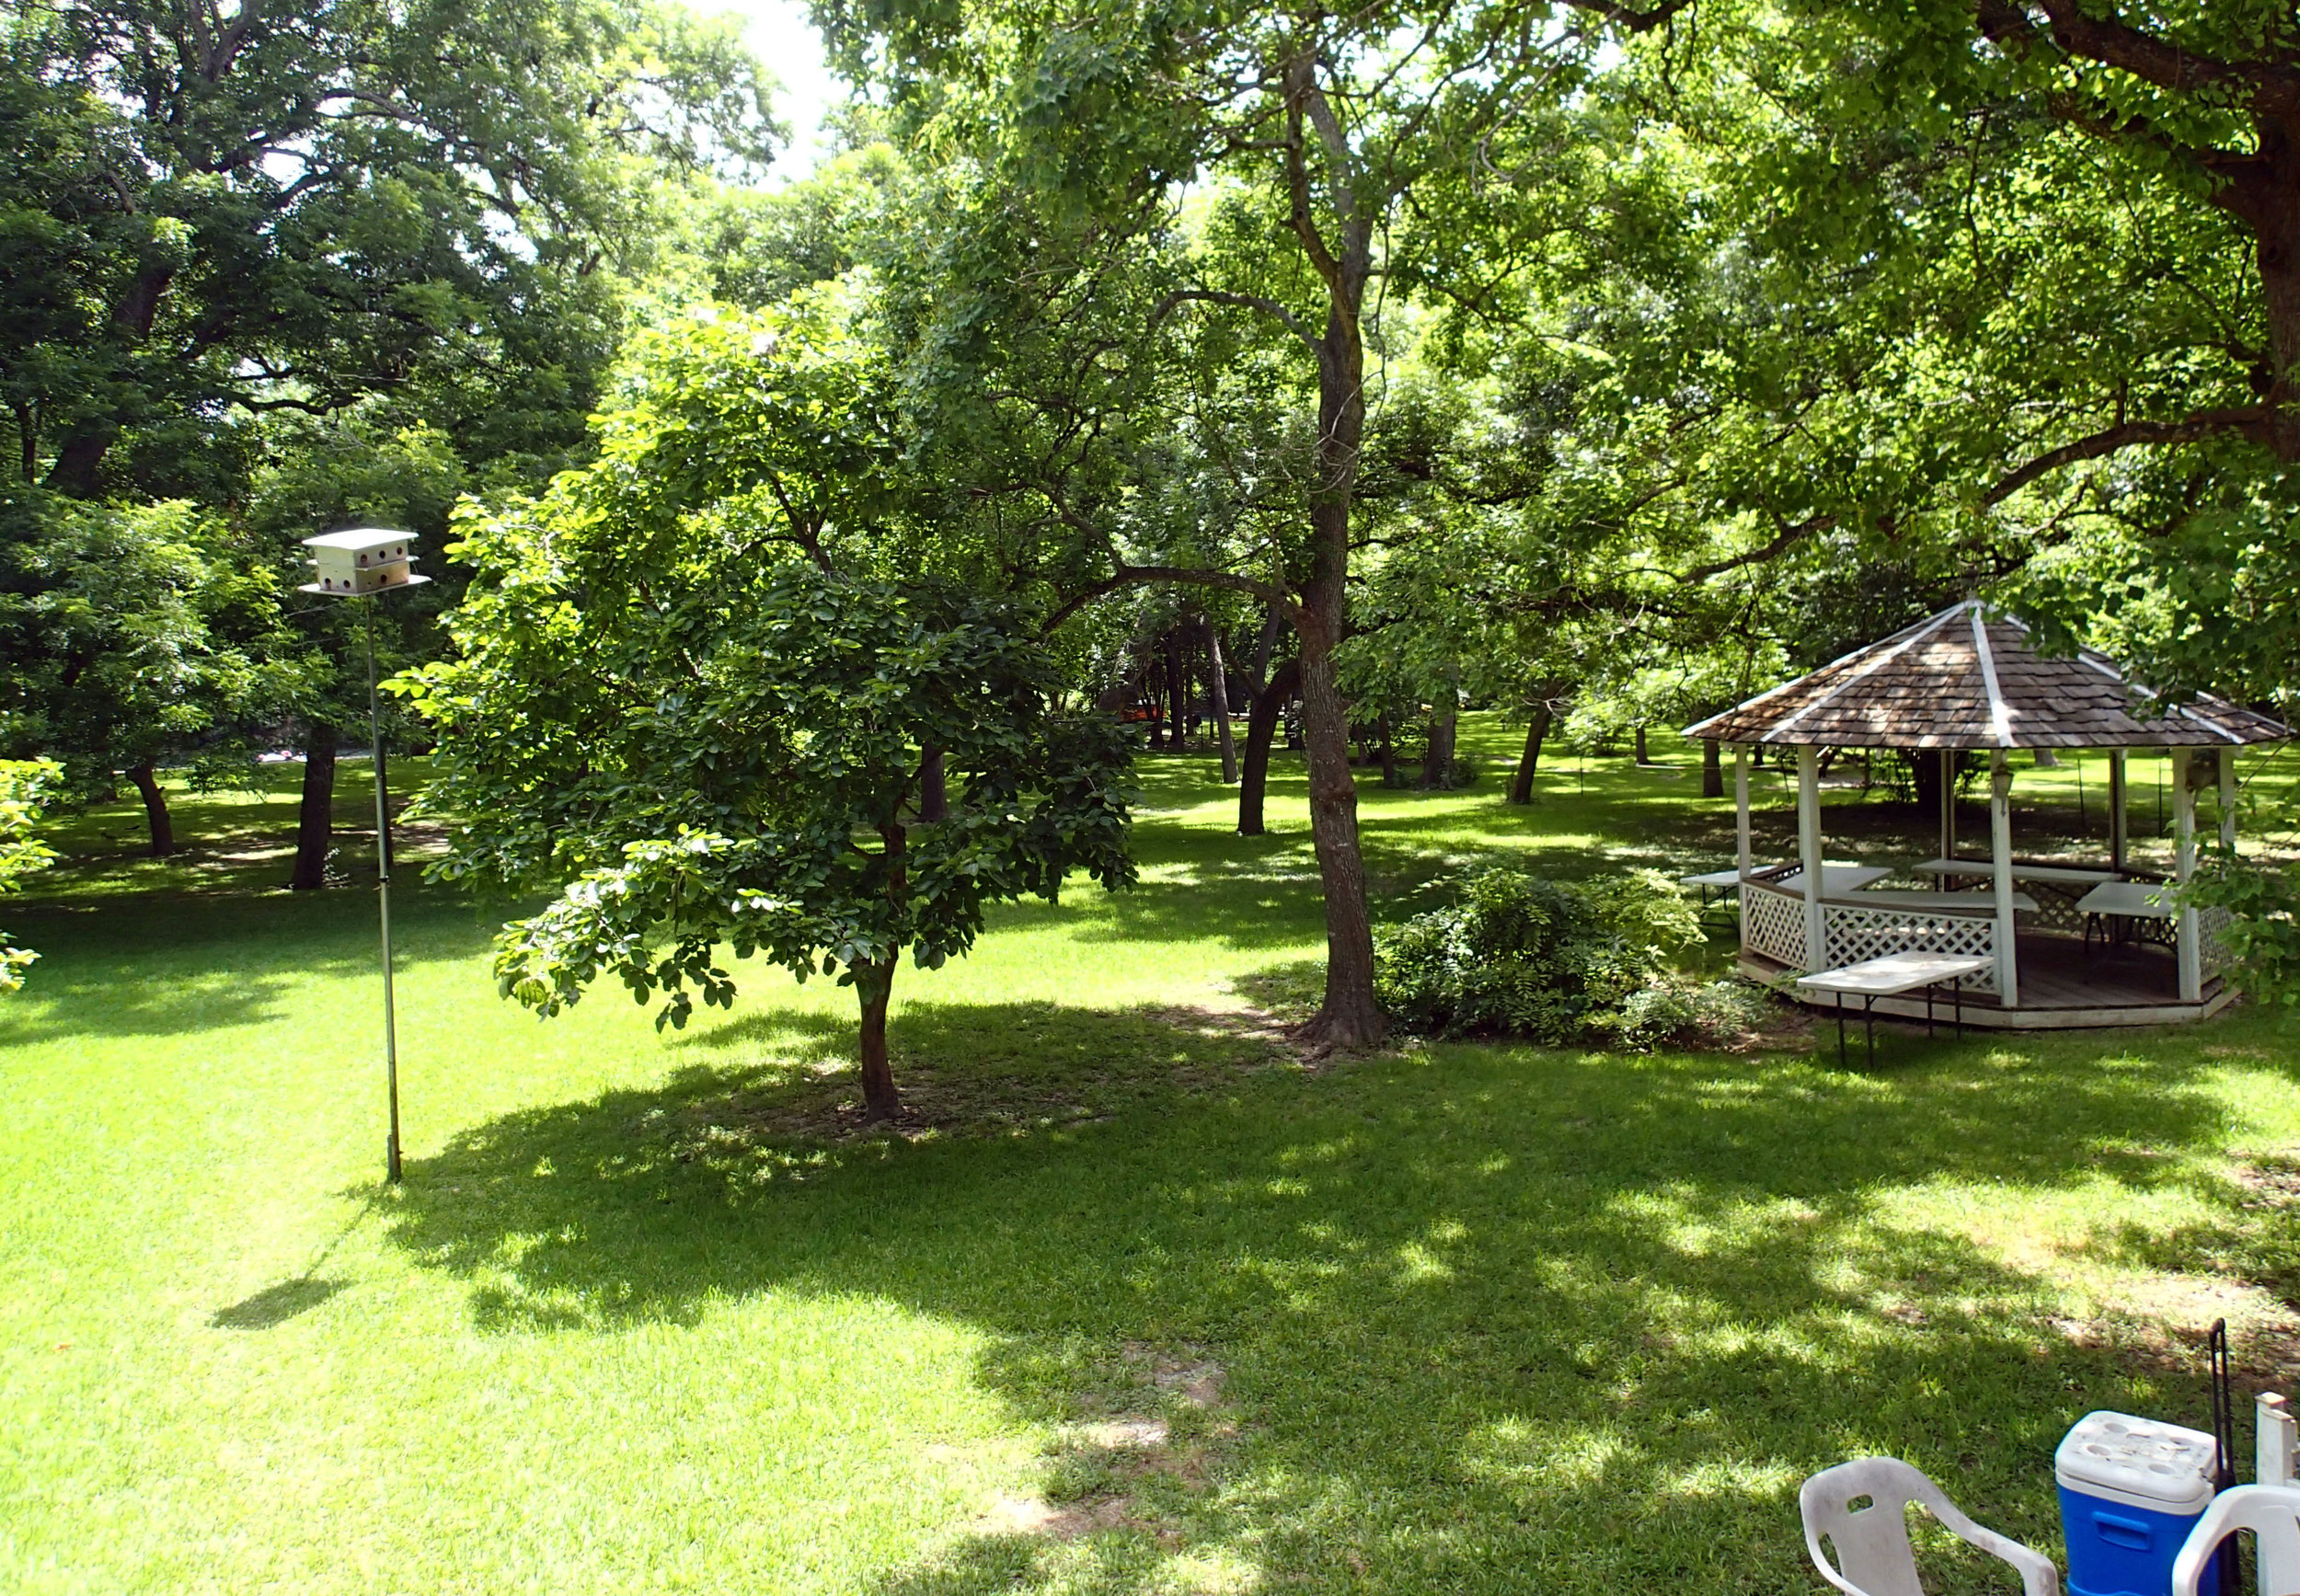 backyard at river house.jpg